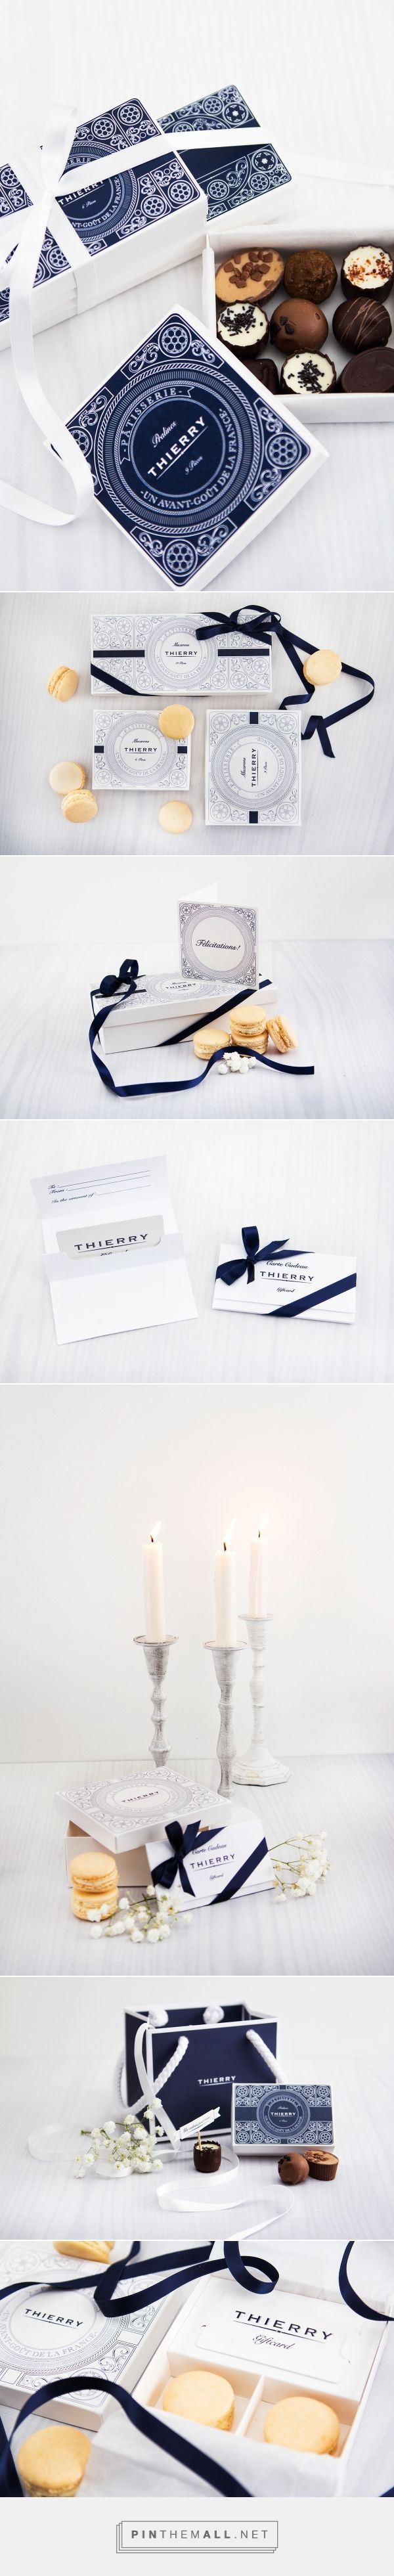 Branding, graphic design and packaging for Thierry on Behance by Linnea Djurberg…